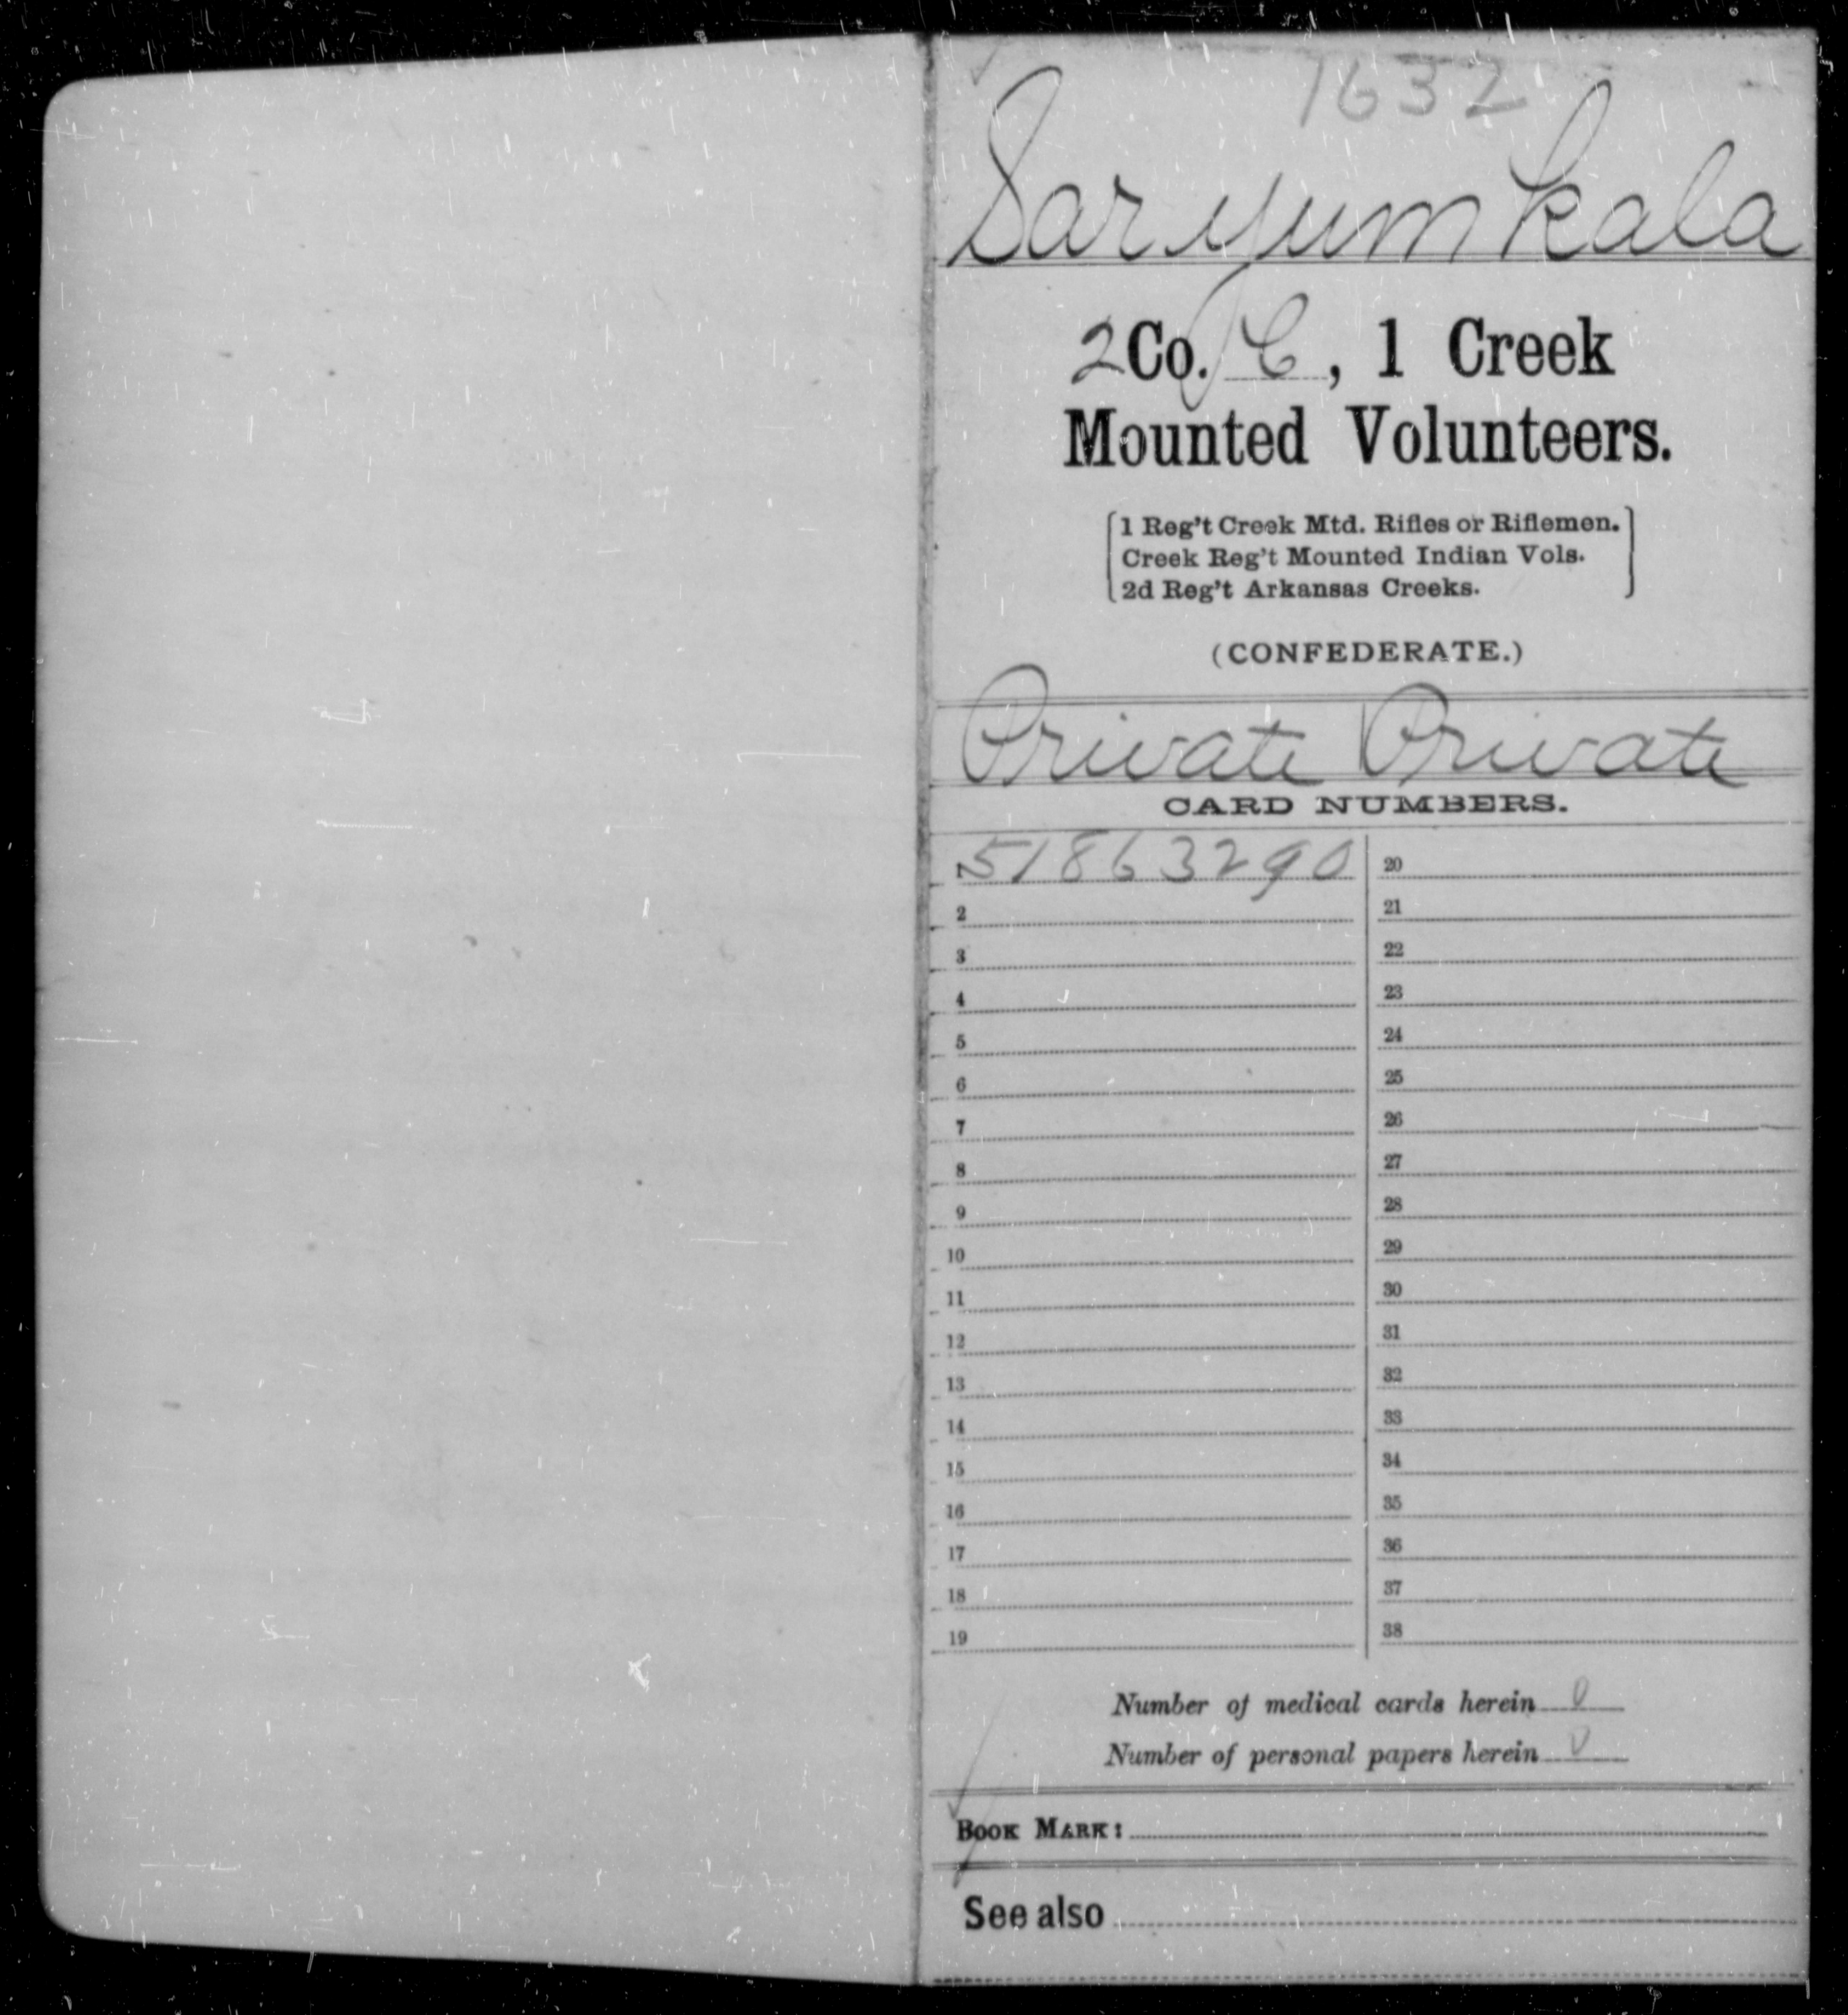 Saryum, Kala - Age 40, Year: 1862 - First Creek Mounted Volunteers, I-S - Raised Directly by the Confederate Government